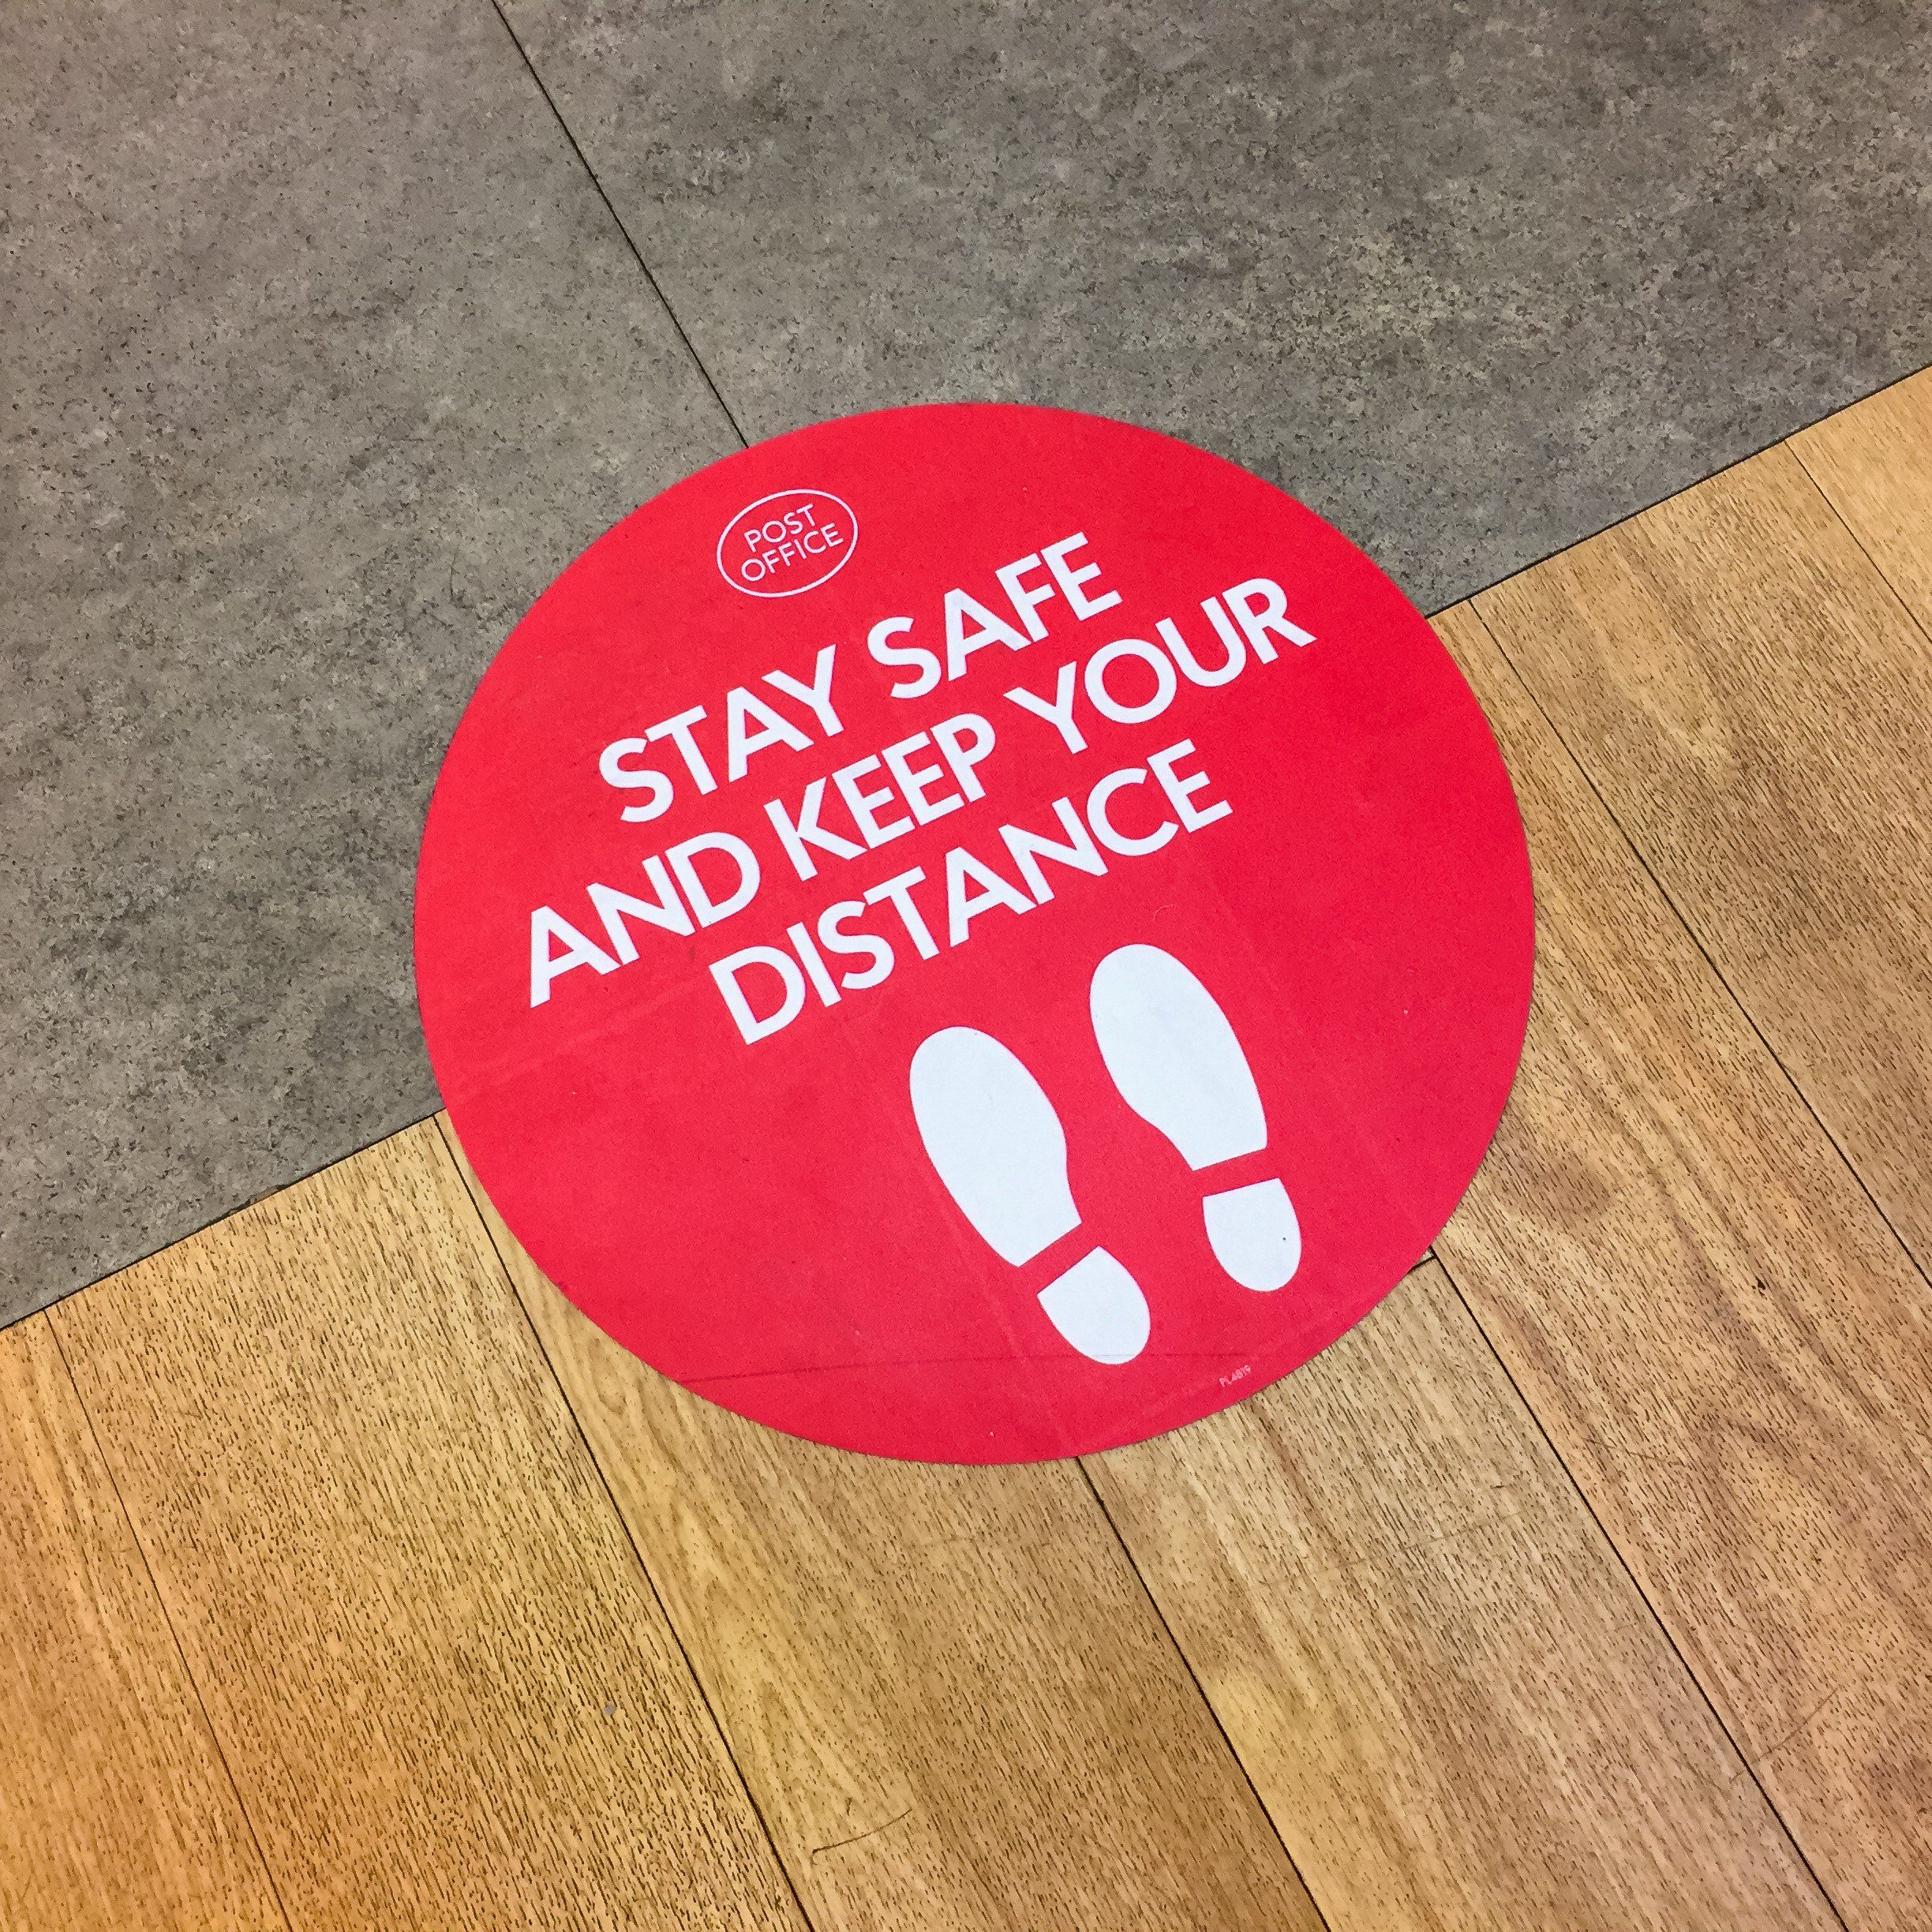 London, UK. May 11th 2020: Houndsditch post office. Customer floor sign, warning to stay safe and keep your distance. Lockdown, coronavirus outbreak, safety sticker, social distancing in a public area